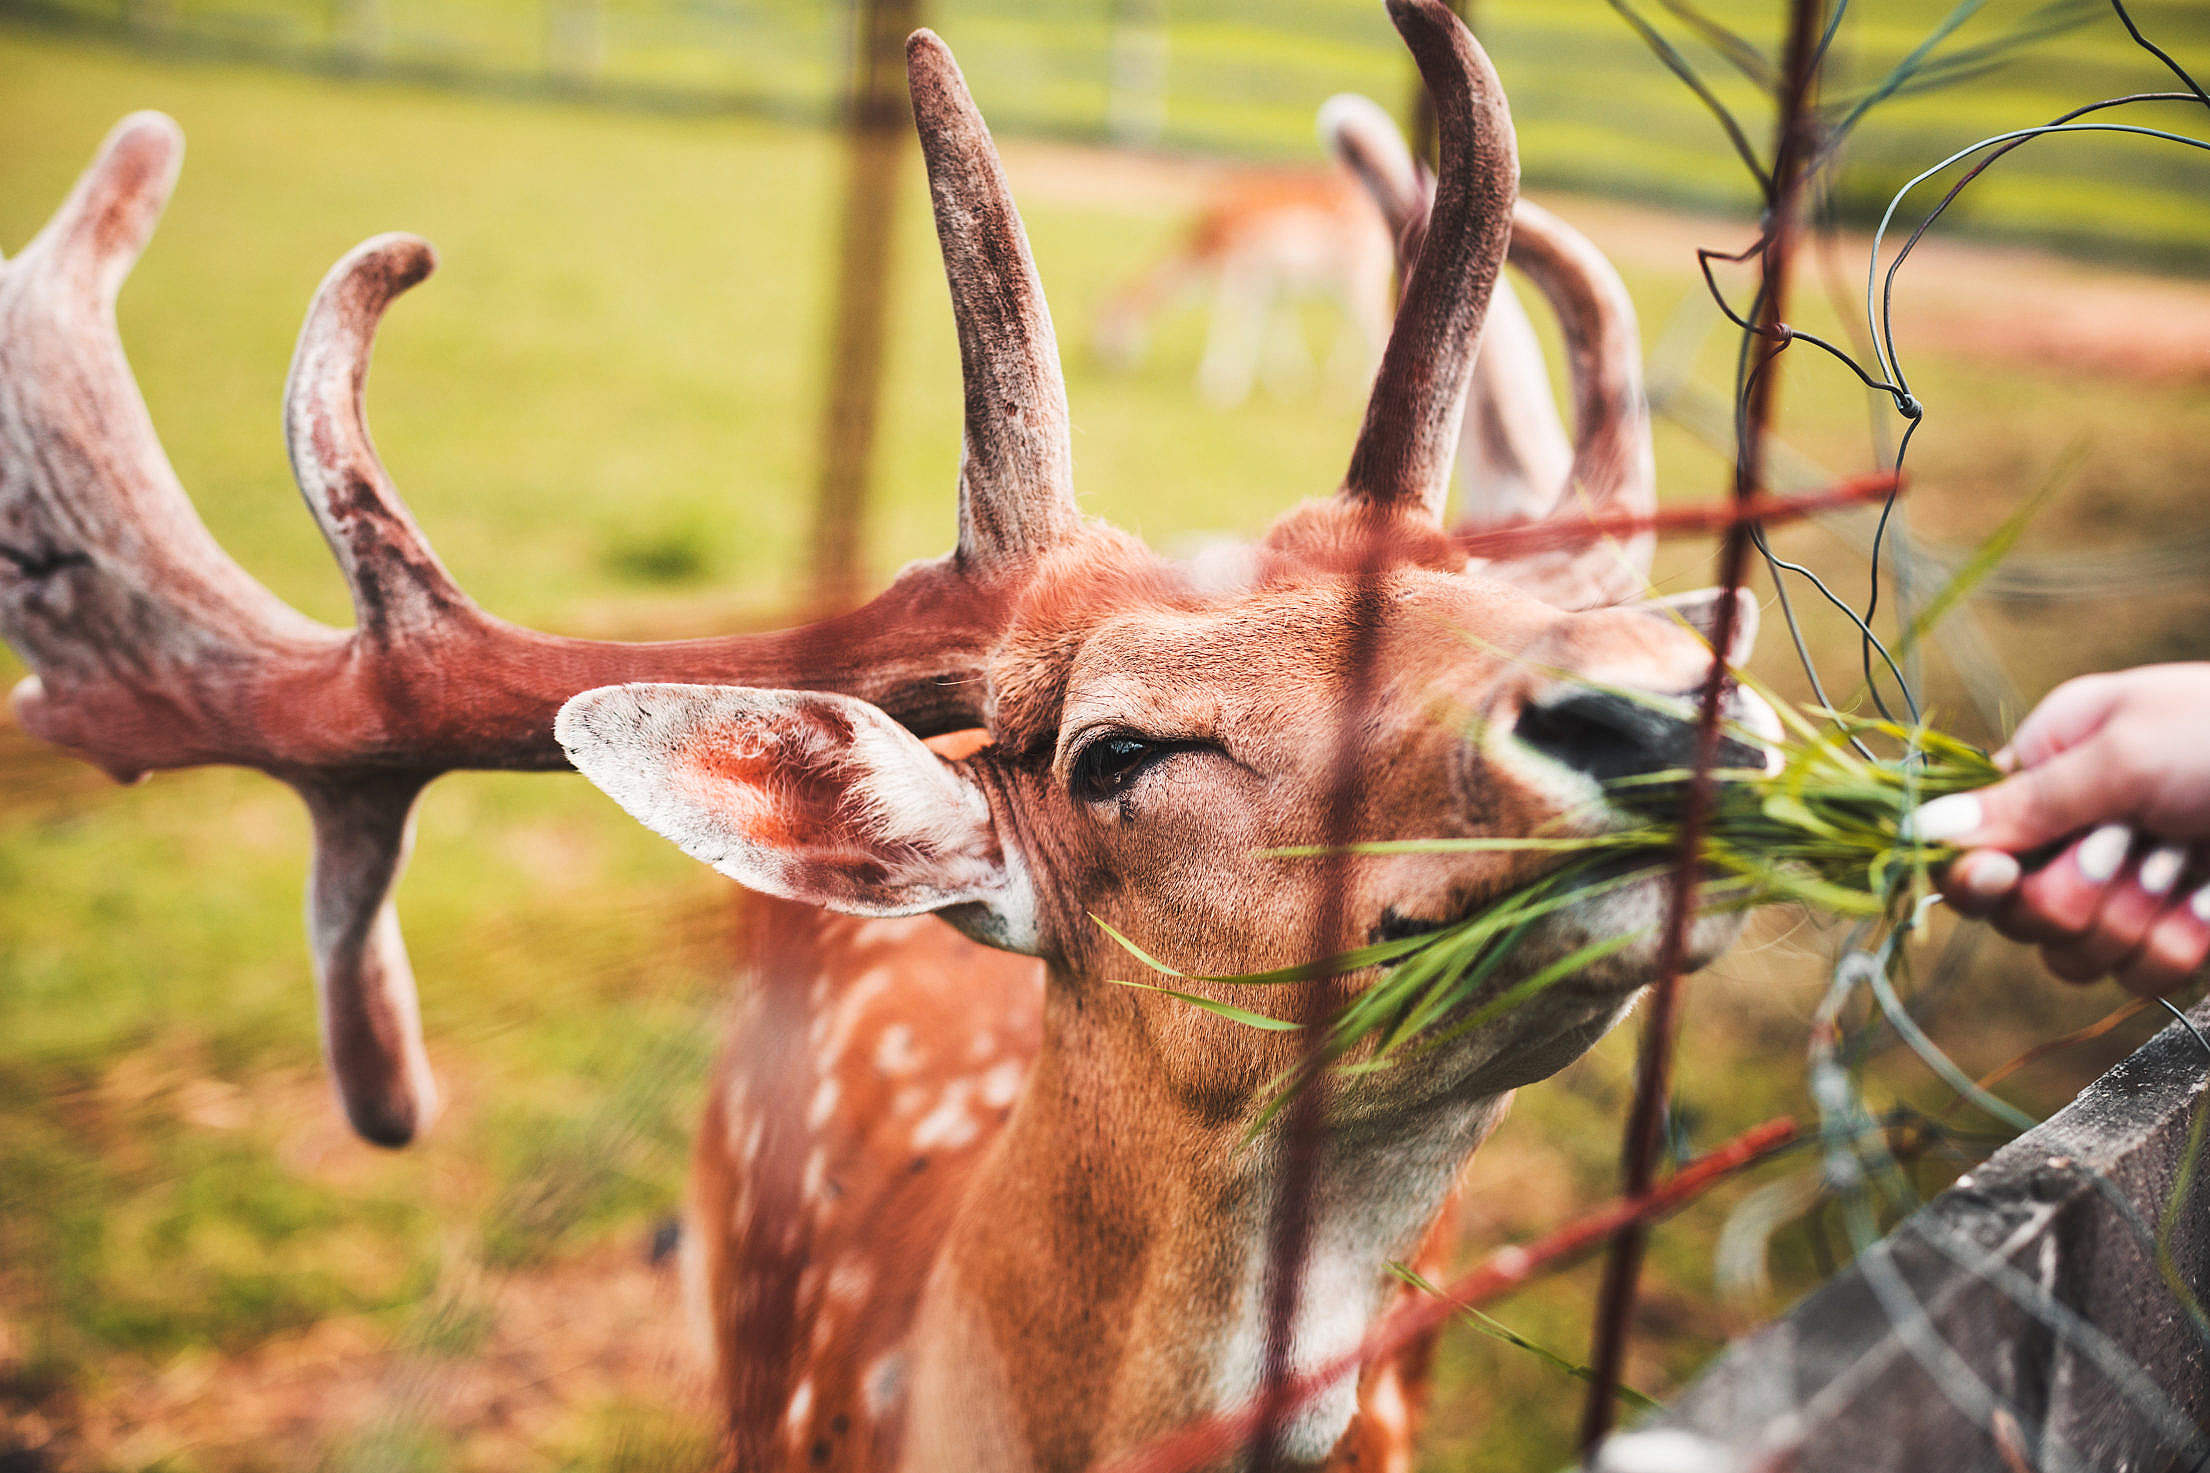 Feeding a Deer by Hand Free Stock Photo